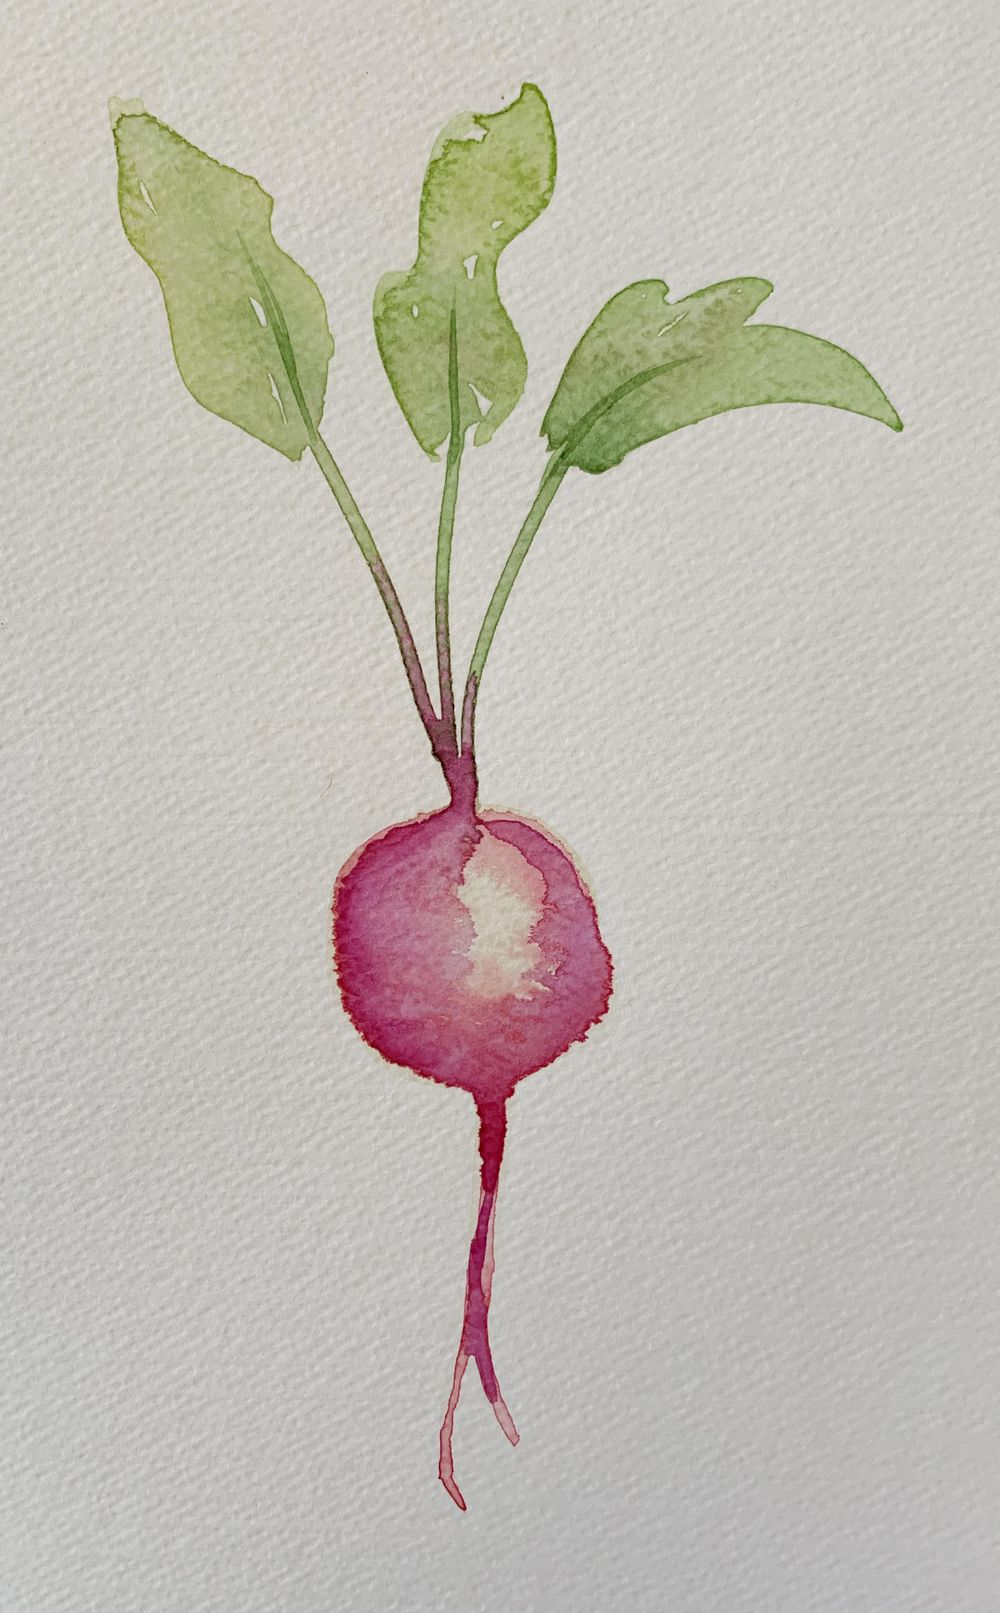 Robyn's veggies - image 4 - student project